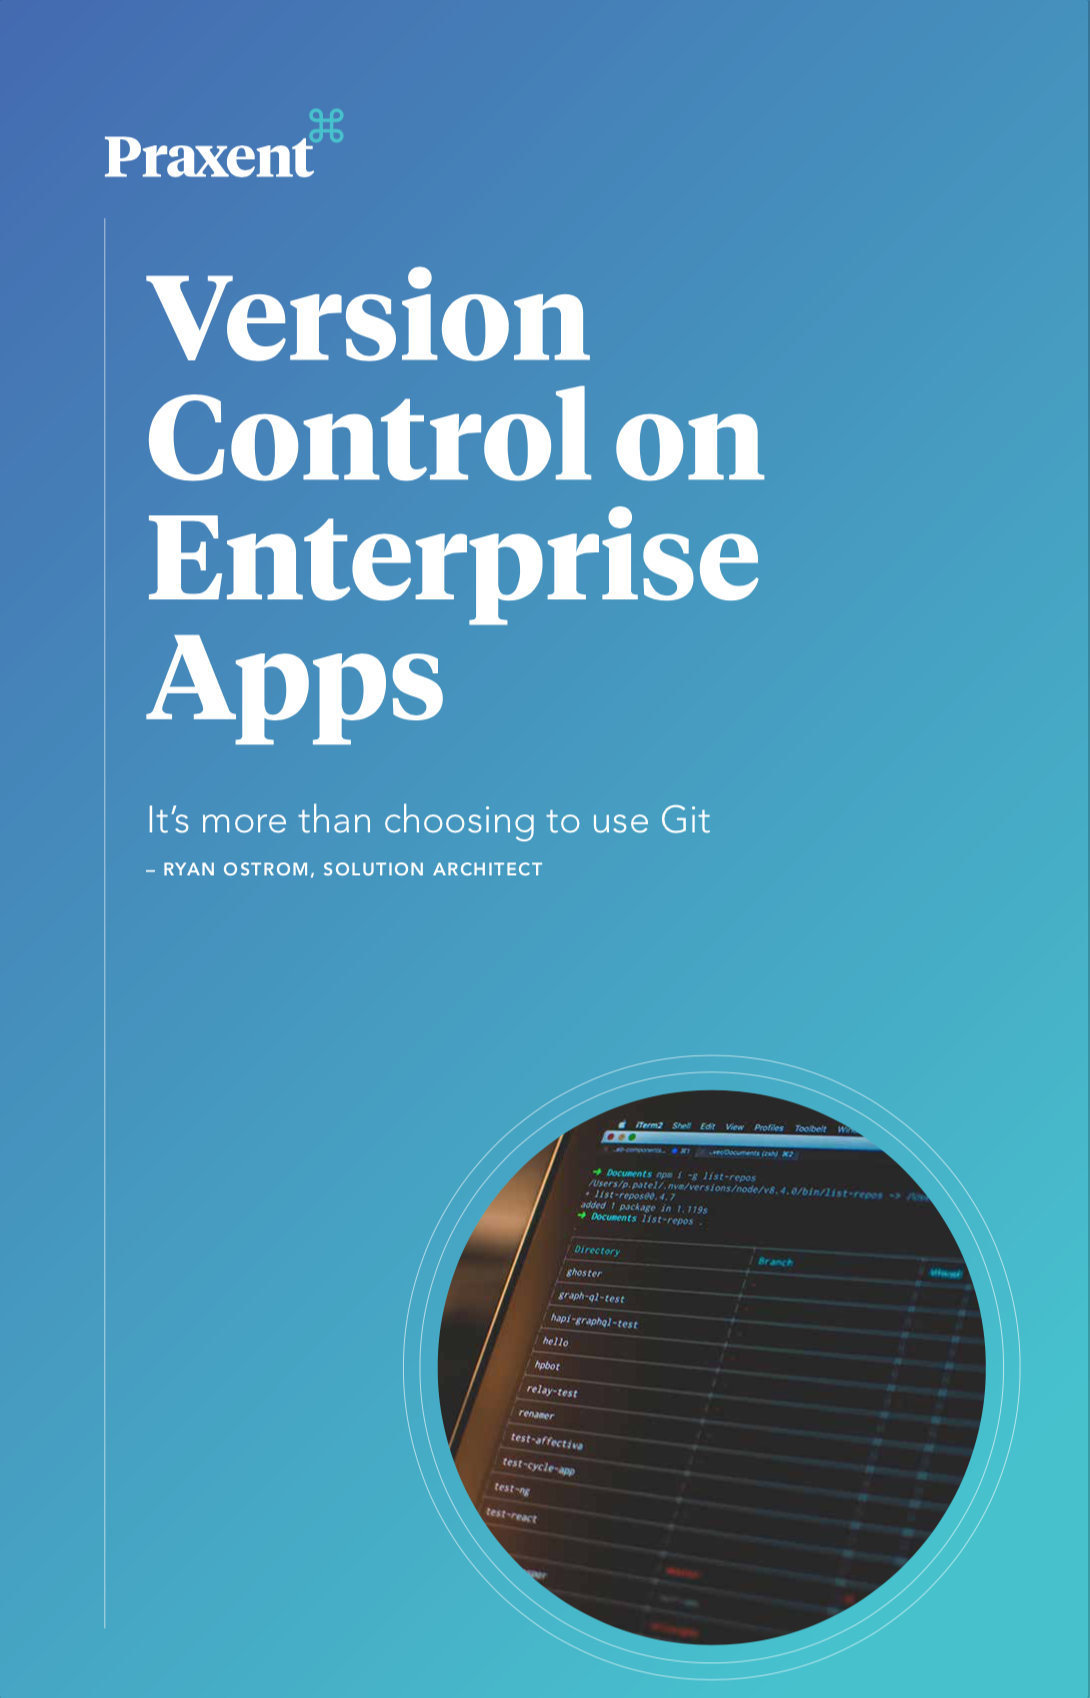 versioncontrol-cover.png